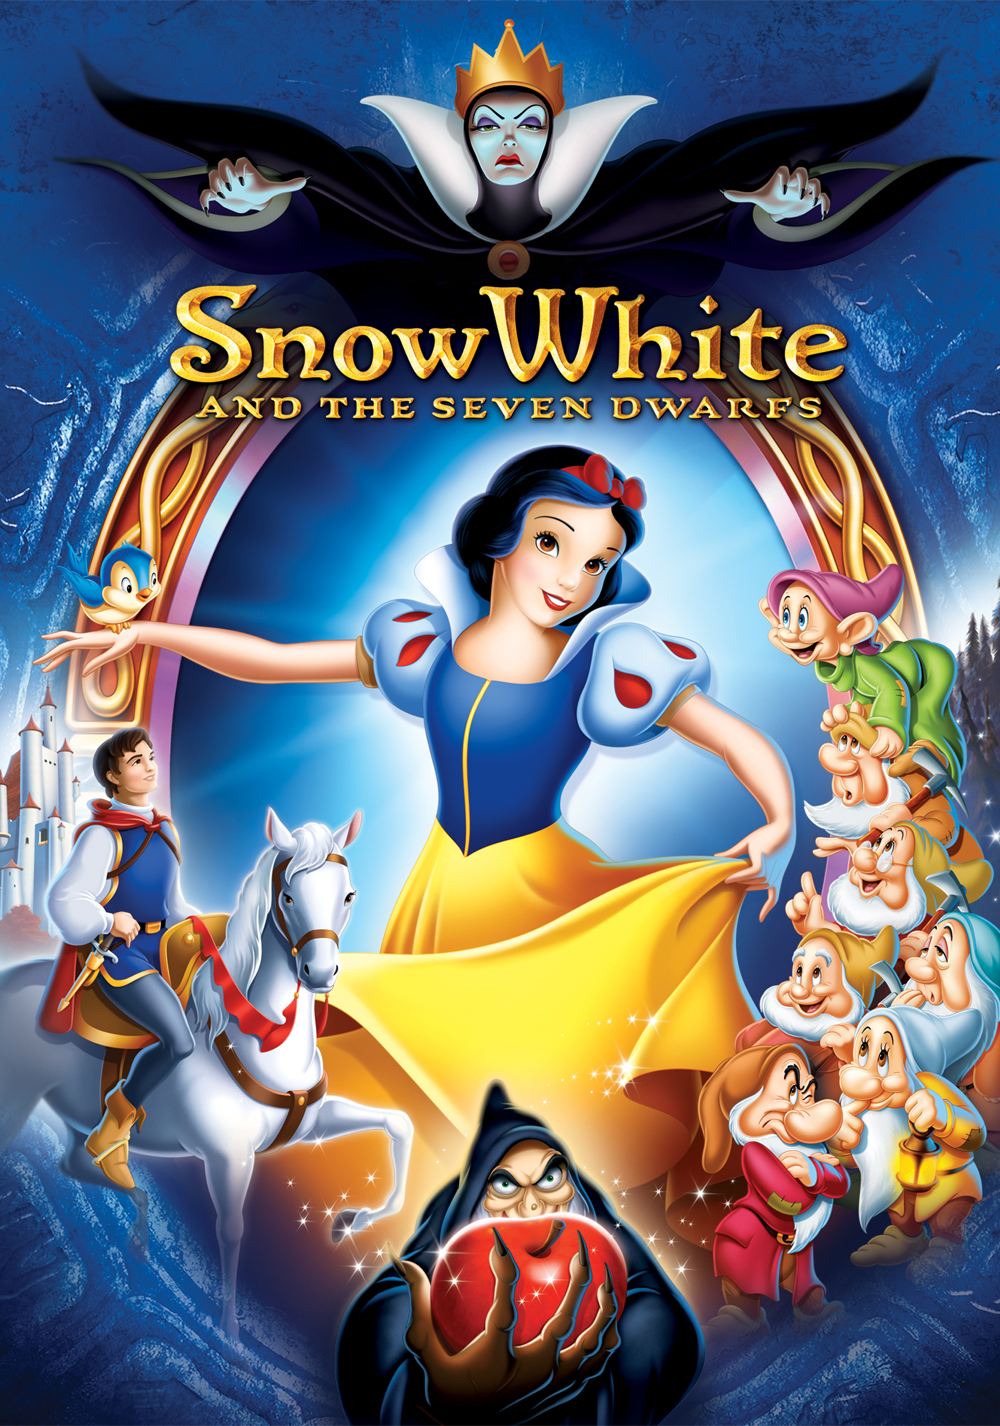 Image result for snow white and the seven dwarfs movie poster 1937